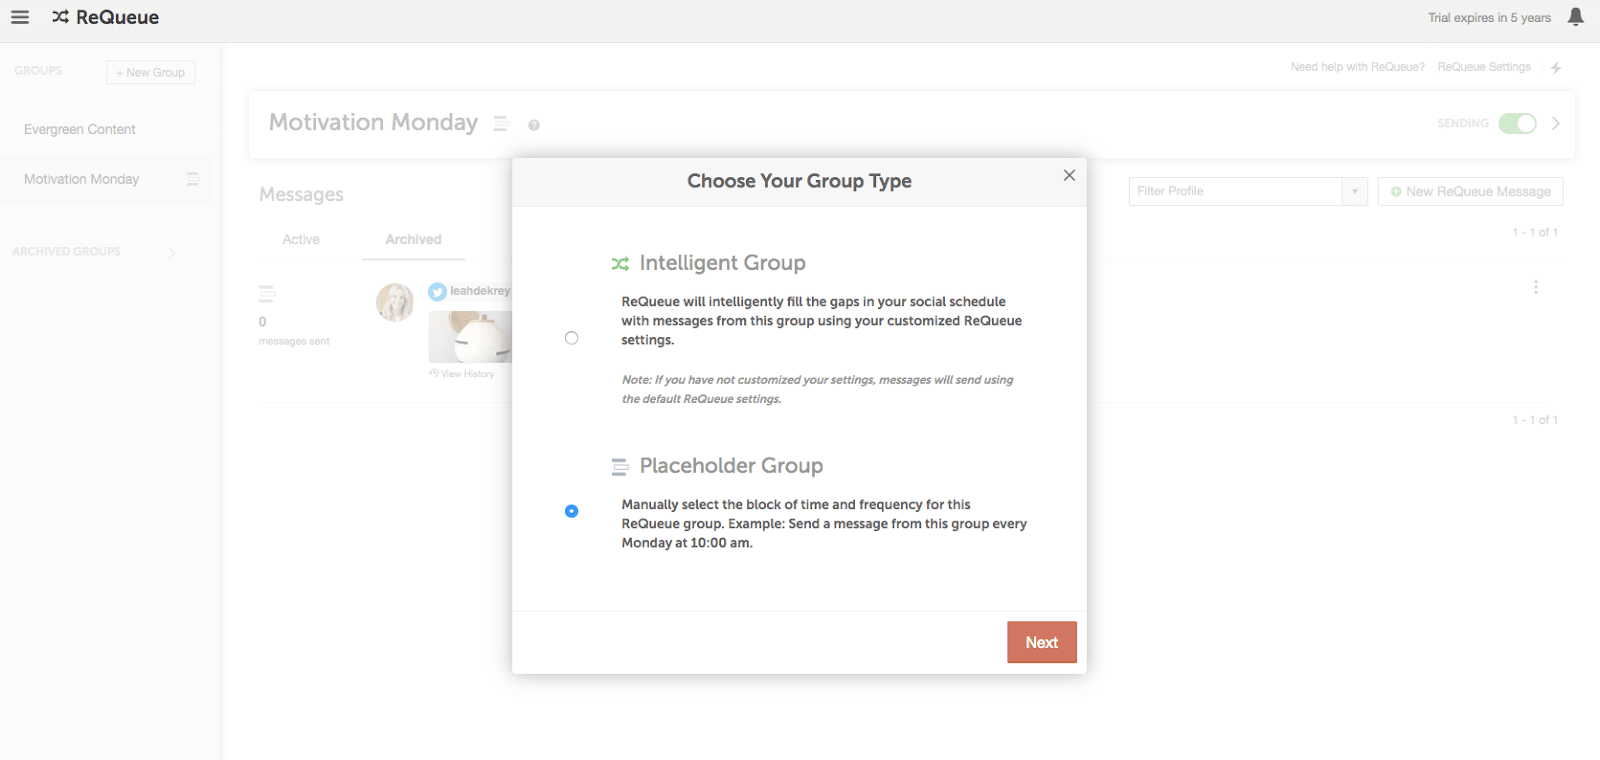 Choose your group type. Intelligent Group or Placeholder Group